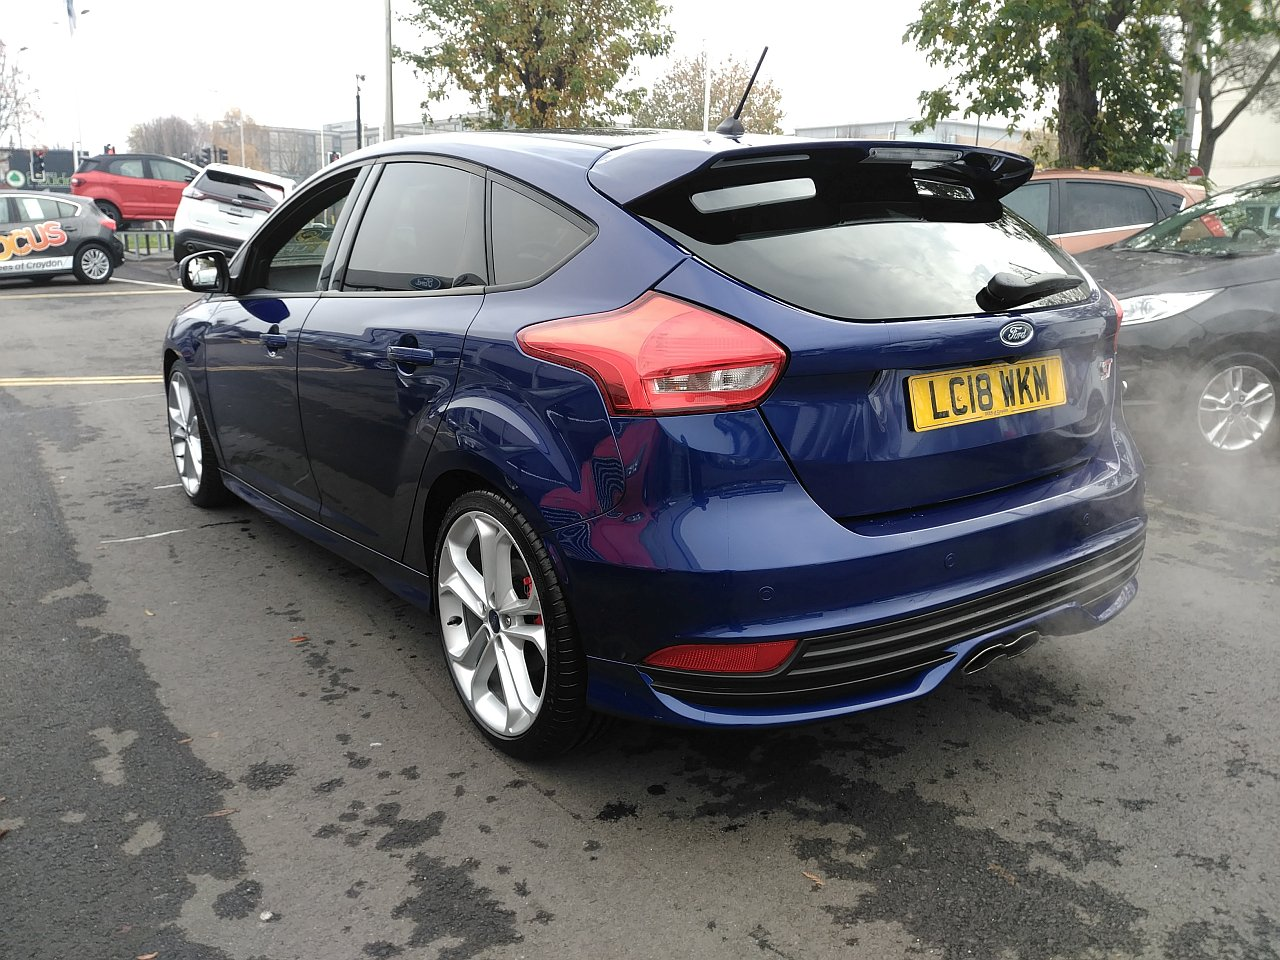 Ford Focus ST St-3 Turbo image 8